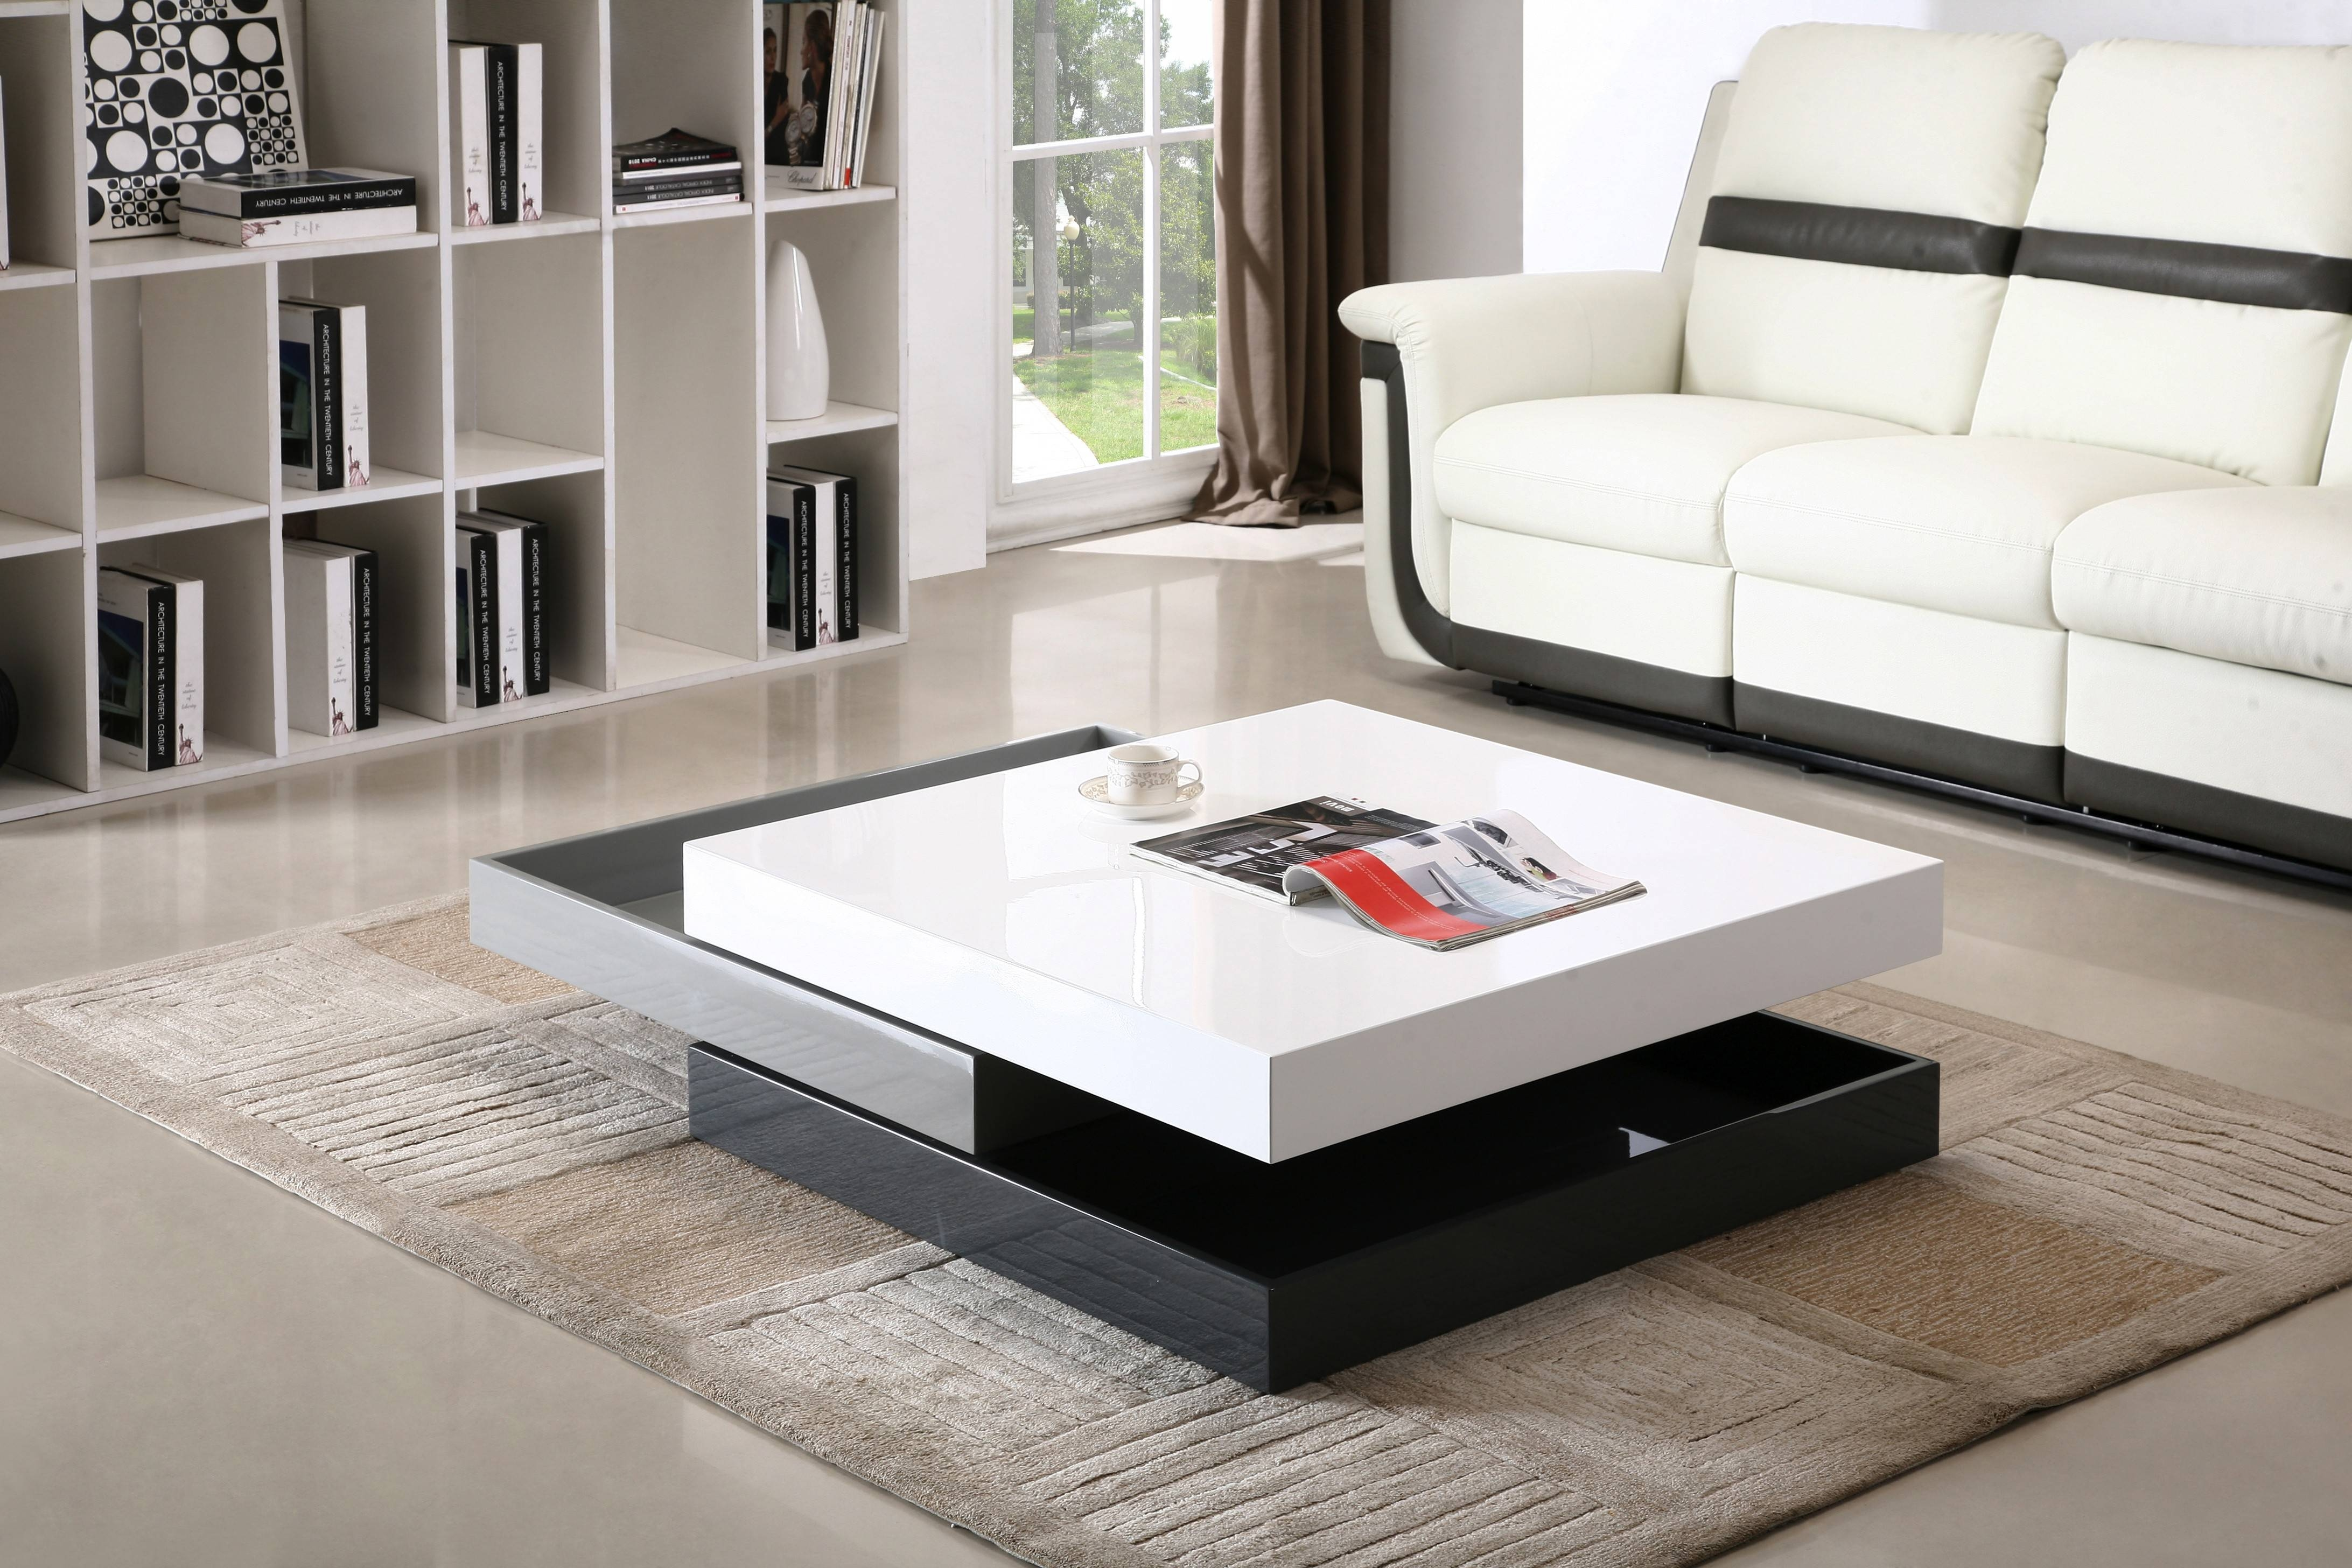 Outstanding Tables For Living Room Ideas – Coffee And End Tables Within Coffee Tables And Side Table Sets (View 26 of 30)